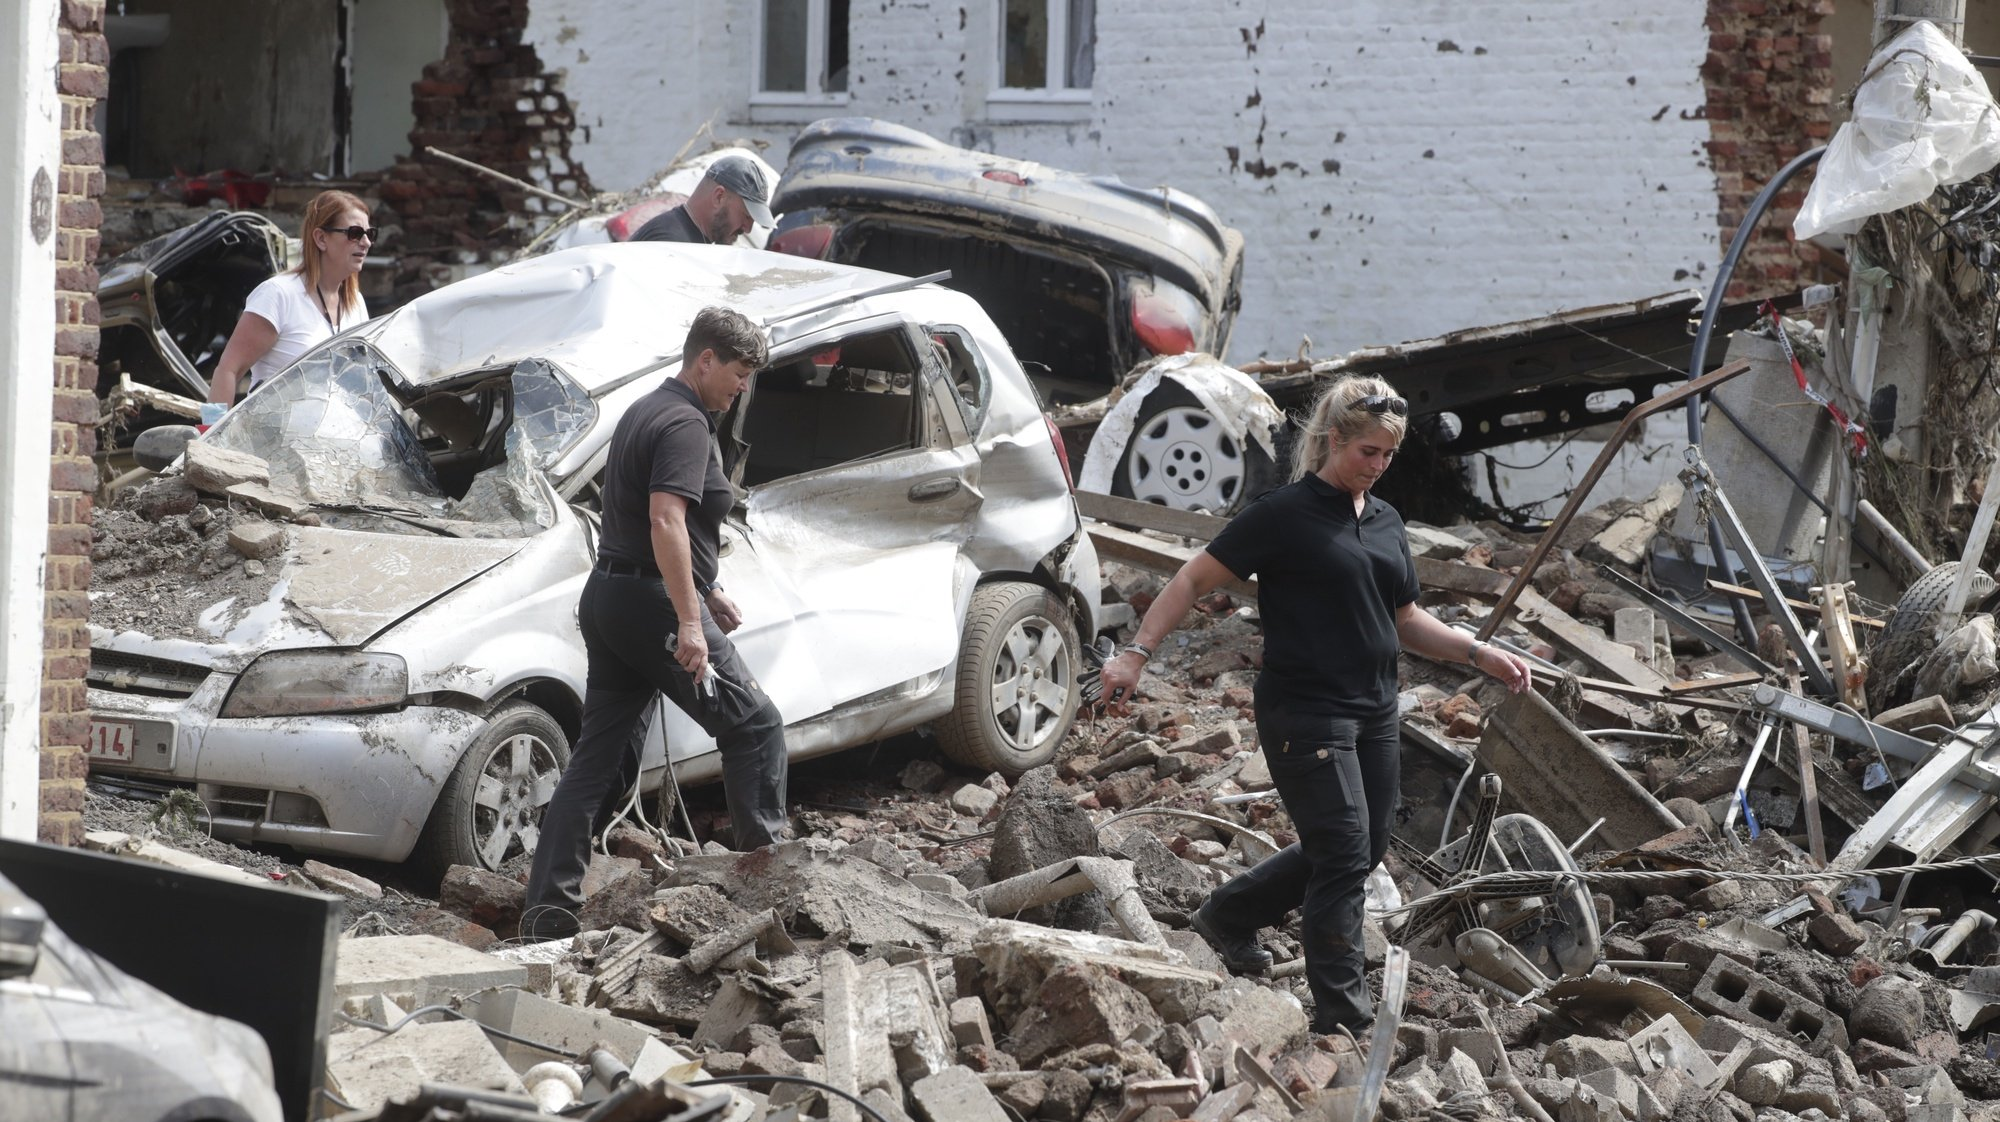 epa09353281 Members of the Belgium Federal Police with a sniffer dog search for bodies in the rubble after heavy rains caused flooding in Pepinster, Belgium, 19 July 2021. Heavy rains have caused widespread damage and flooding in parts of Belgium in the night of 14/15 July.  EPA/STEPHANIE LECOCQ